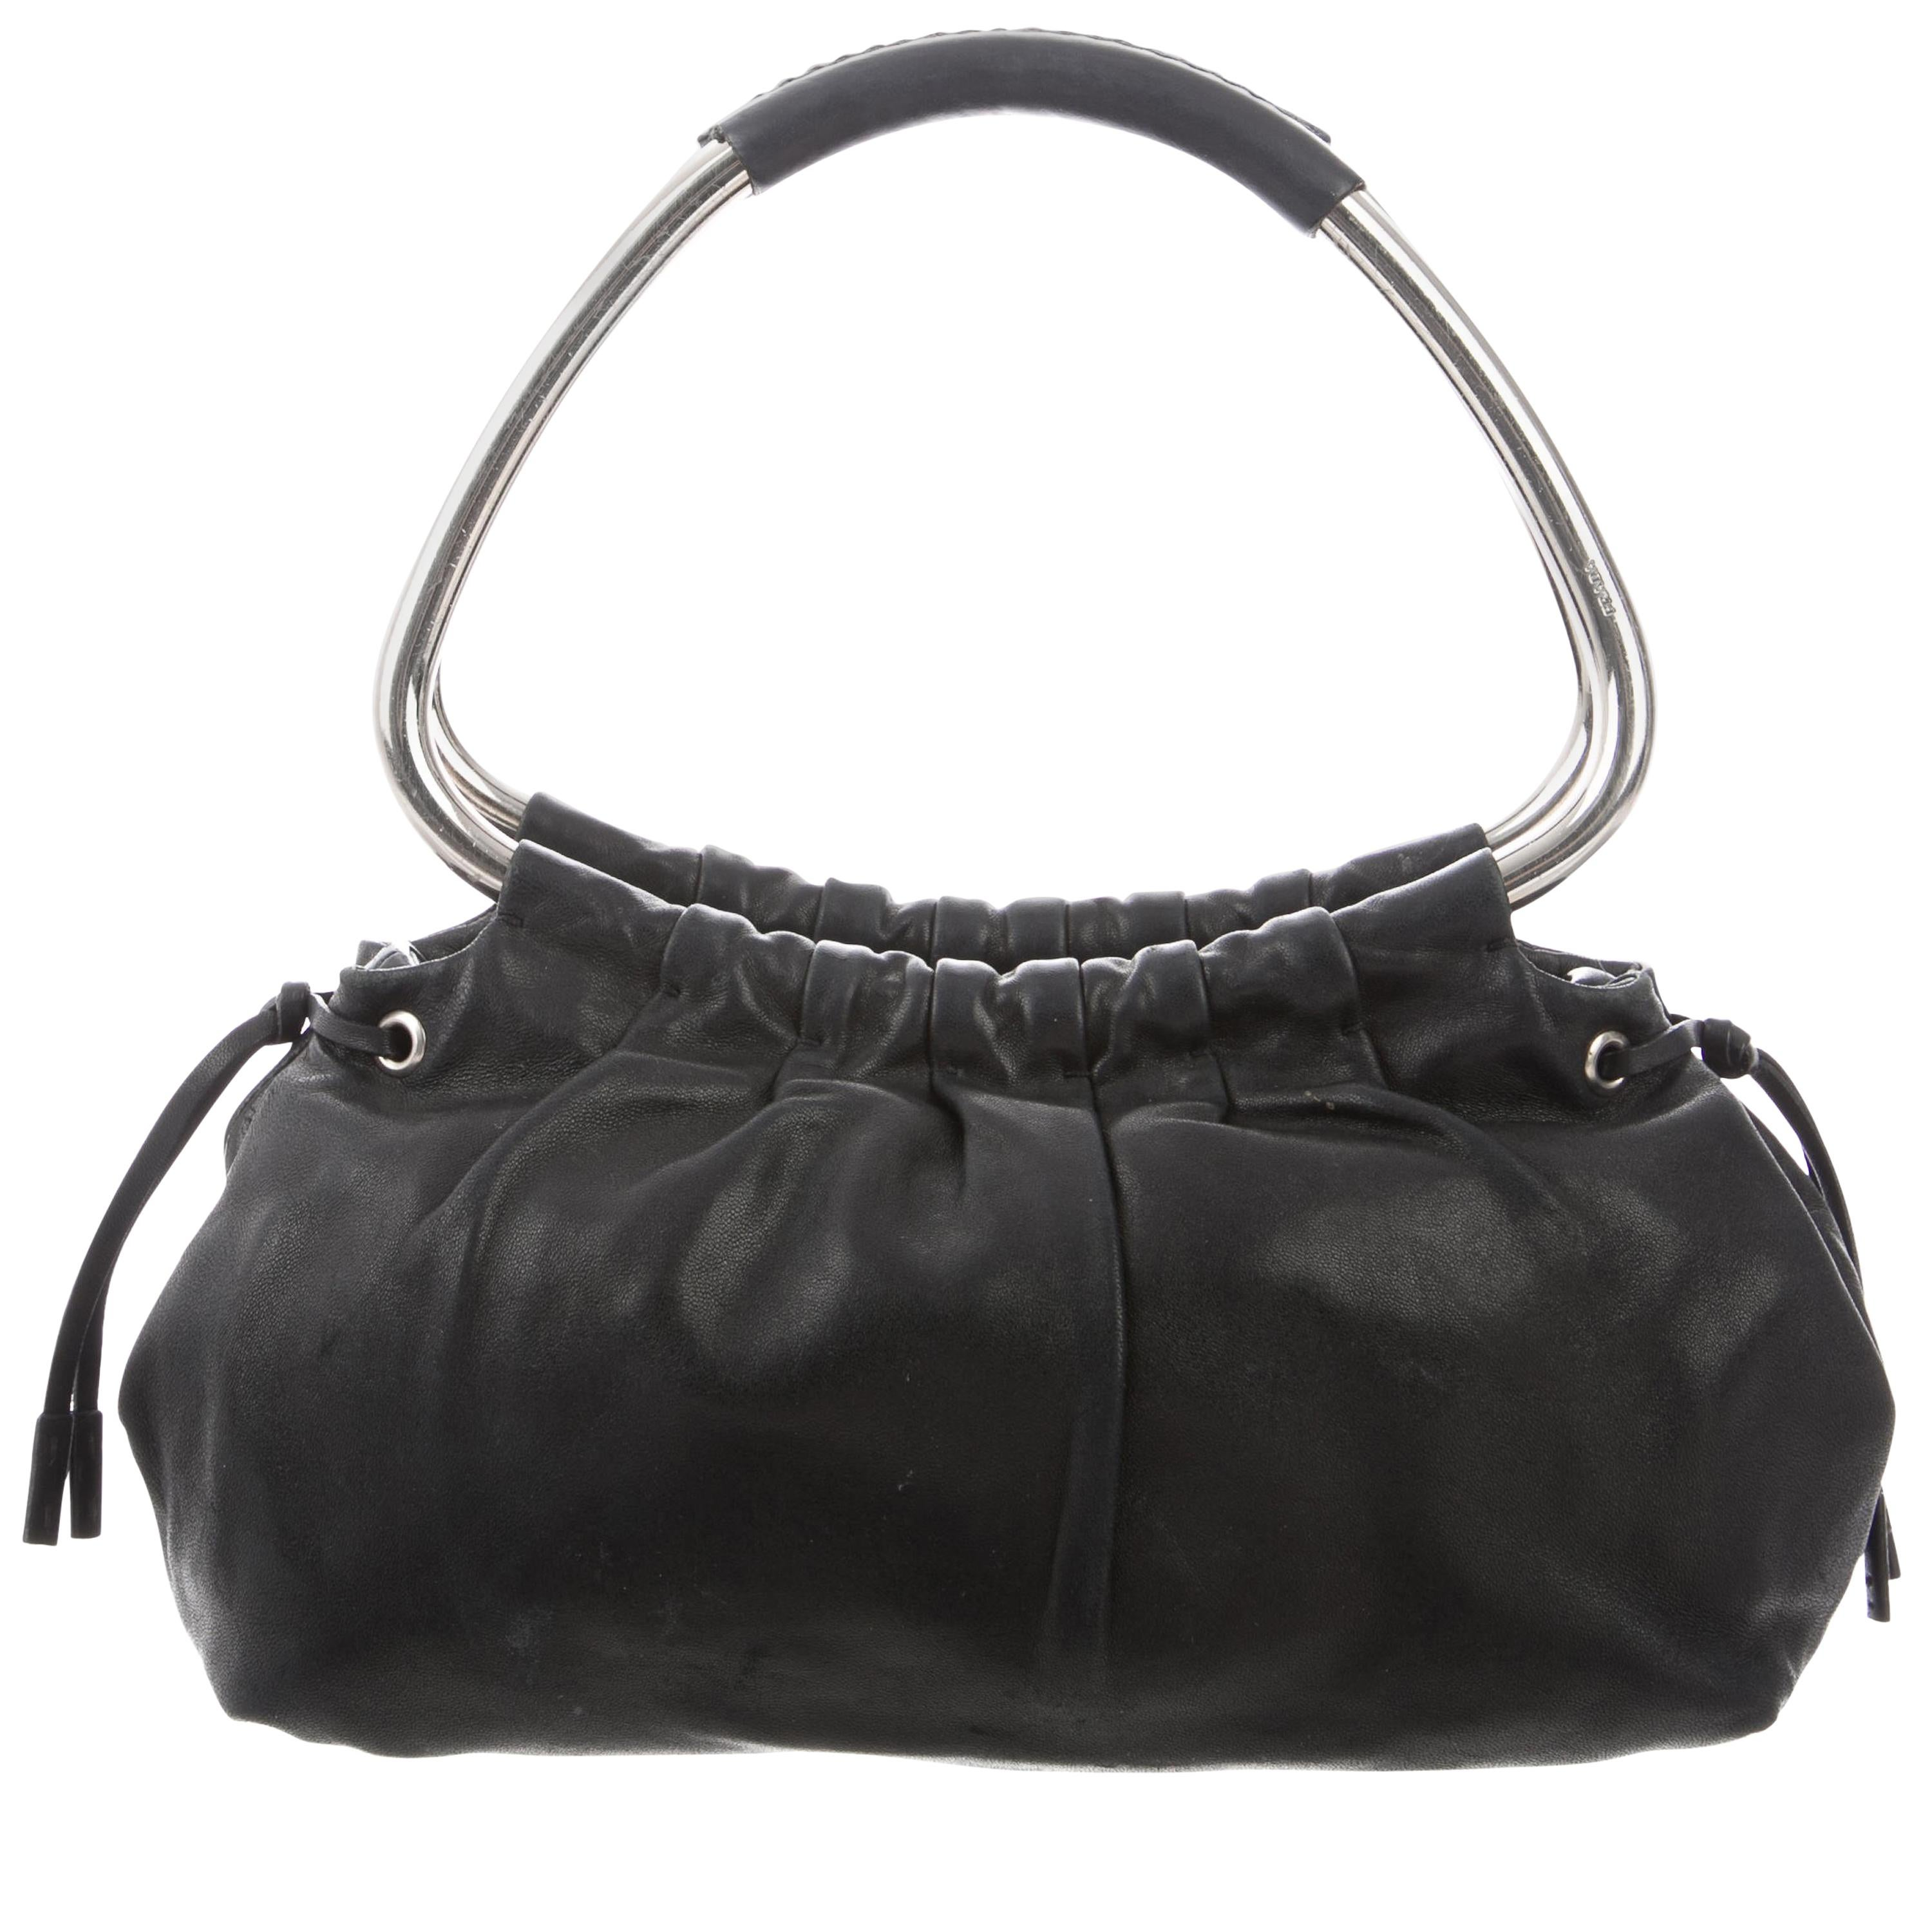 d2bb3fbc37 ... denmark prada black leather silver metal top handle small party evening satchel  bag b1558 f0053